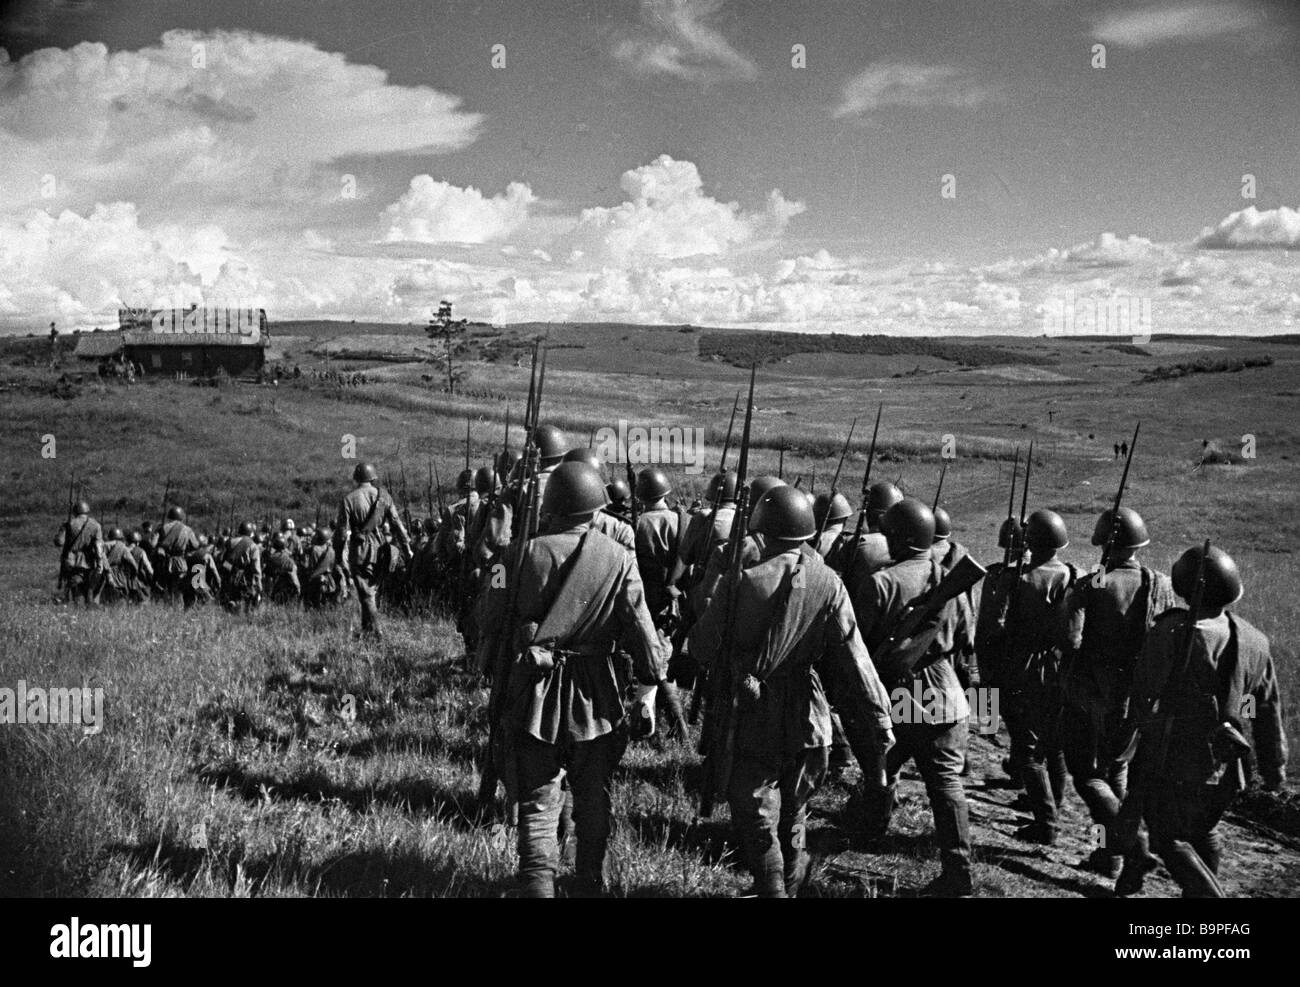 Soviet soldiers going to the frontline - Stock Image